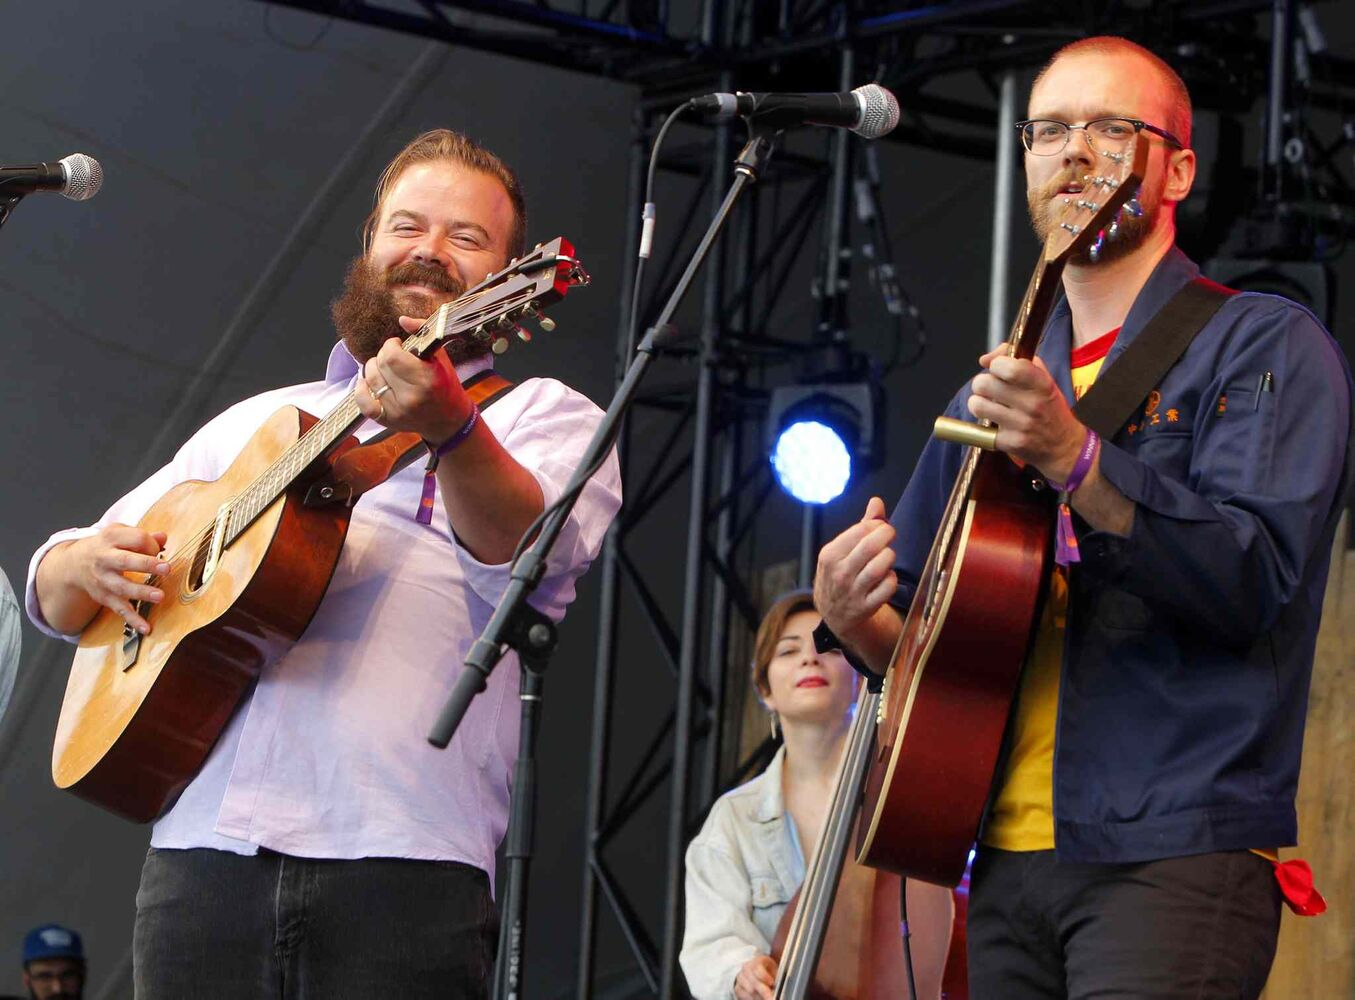 BORIS MINKEVICH / WINNIPEG FREE PRESS WINNIPEG FOLK FESTIVAL 2016 - The Crooked Brothers perform the first band of the opening night at Folk Fest Main stage in Birds Hill Park.  L-R Matt Foster and Darwin Baker.